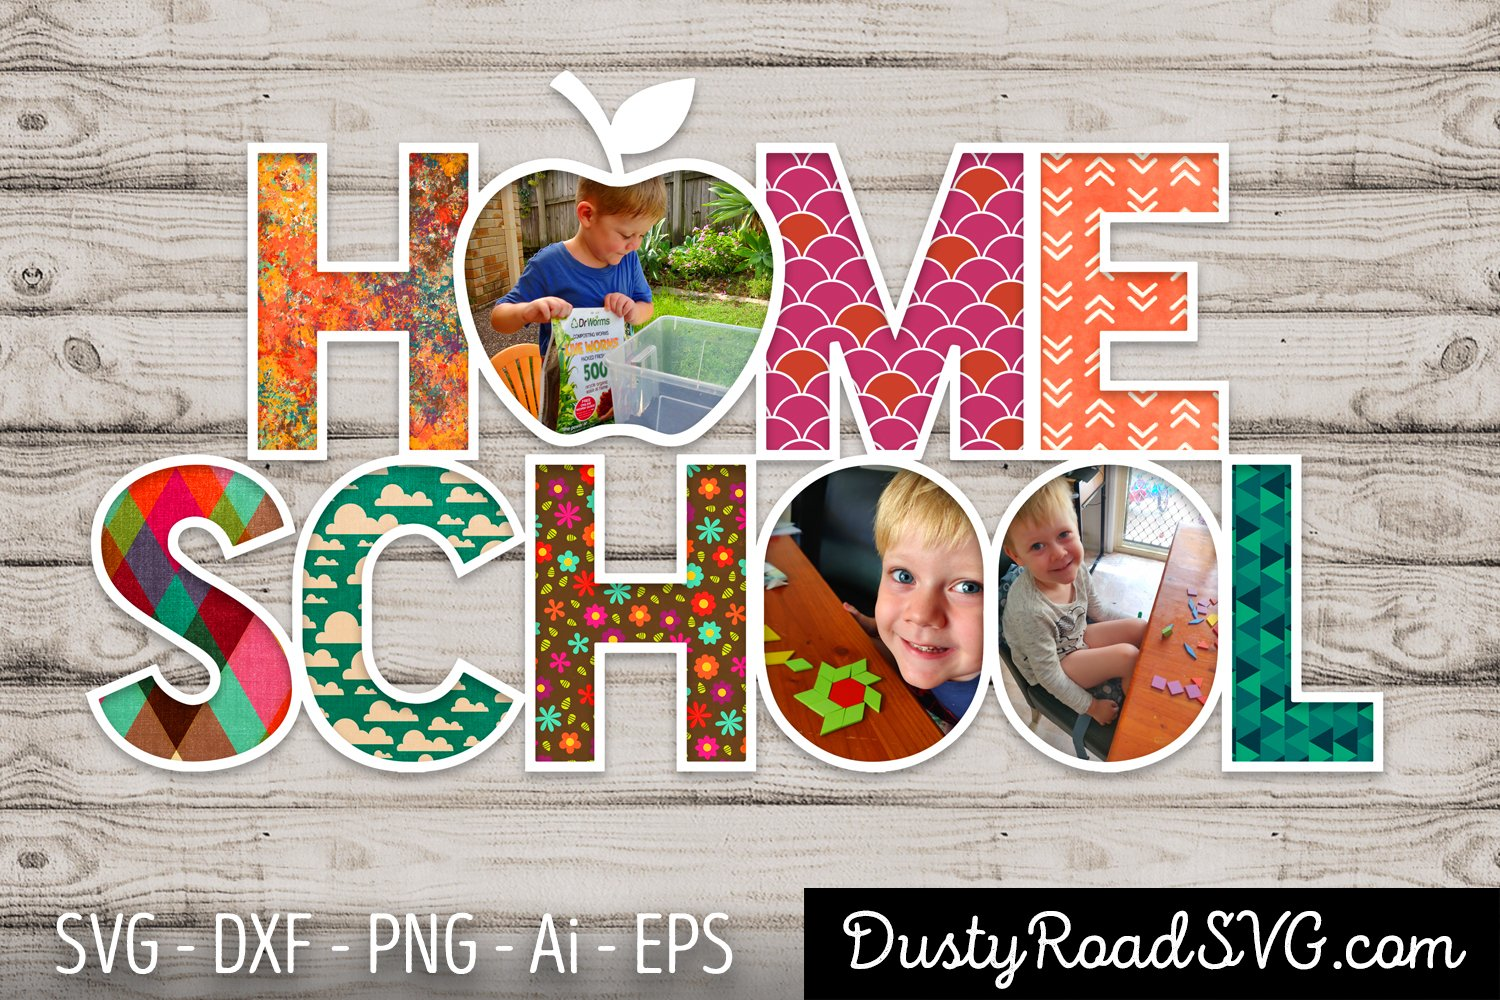 HOME SCHOOL - Scrapbook - cut file - svg png eps dxf example image 1